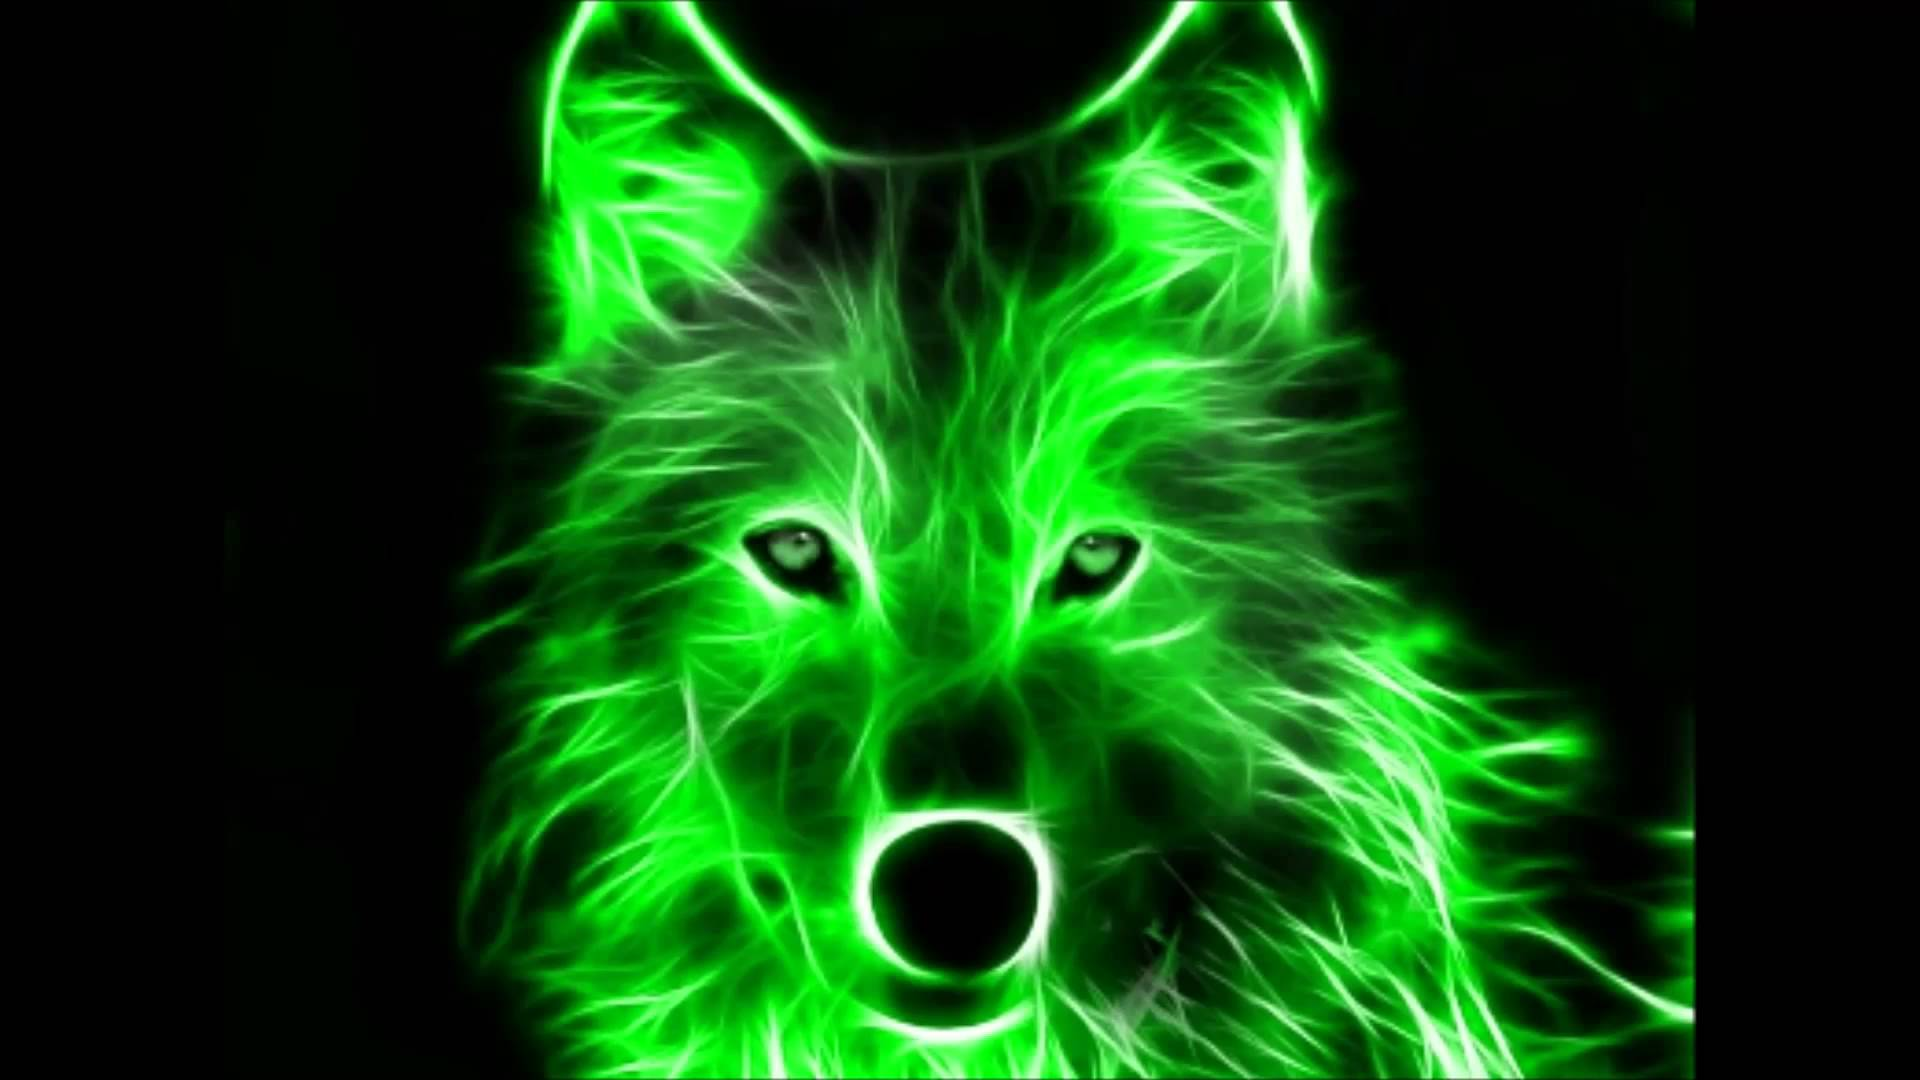 Coole Wolf Bilder Cool Pictures Cool Beats 3 Youtube Jpg Cliparting